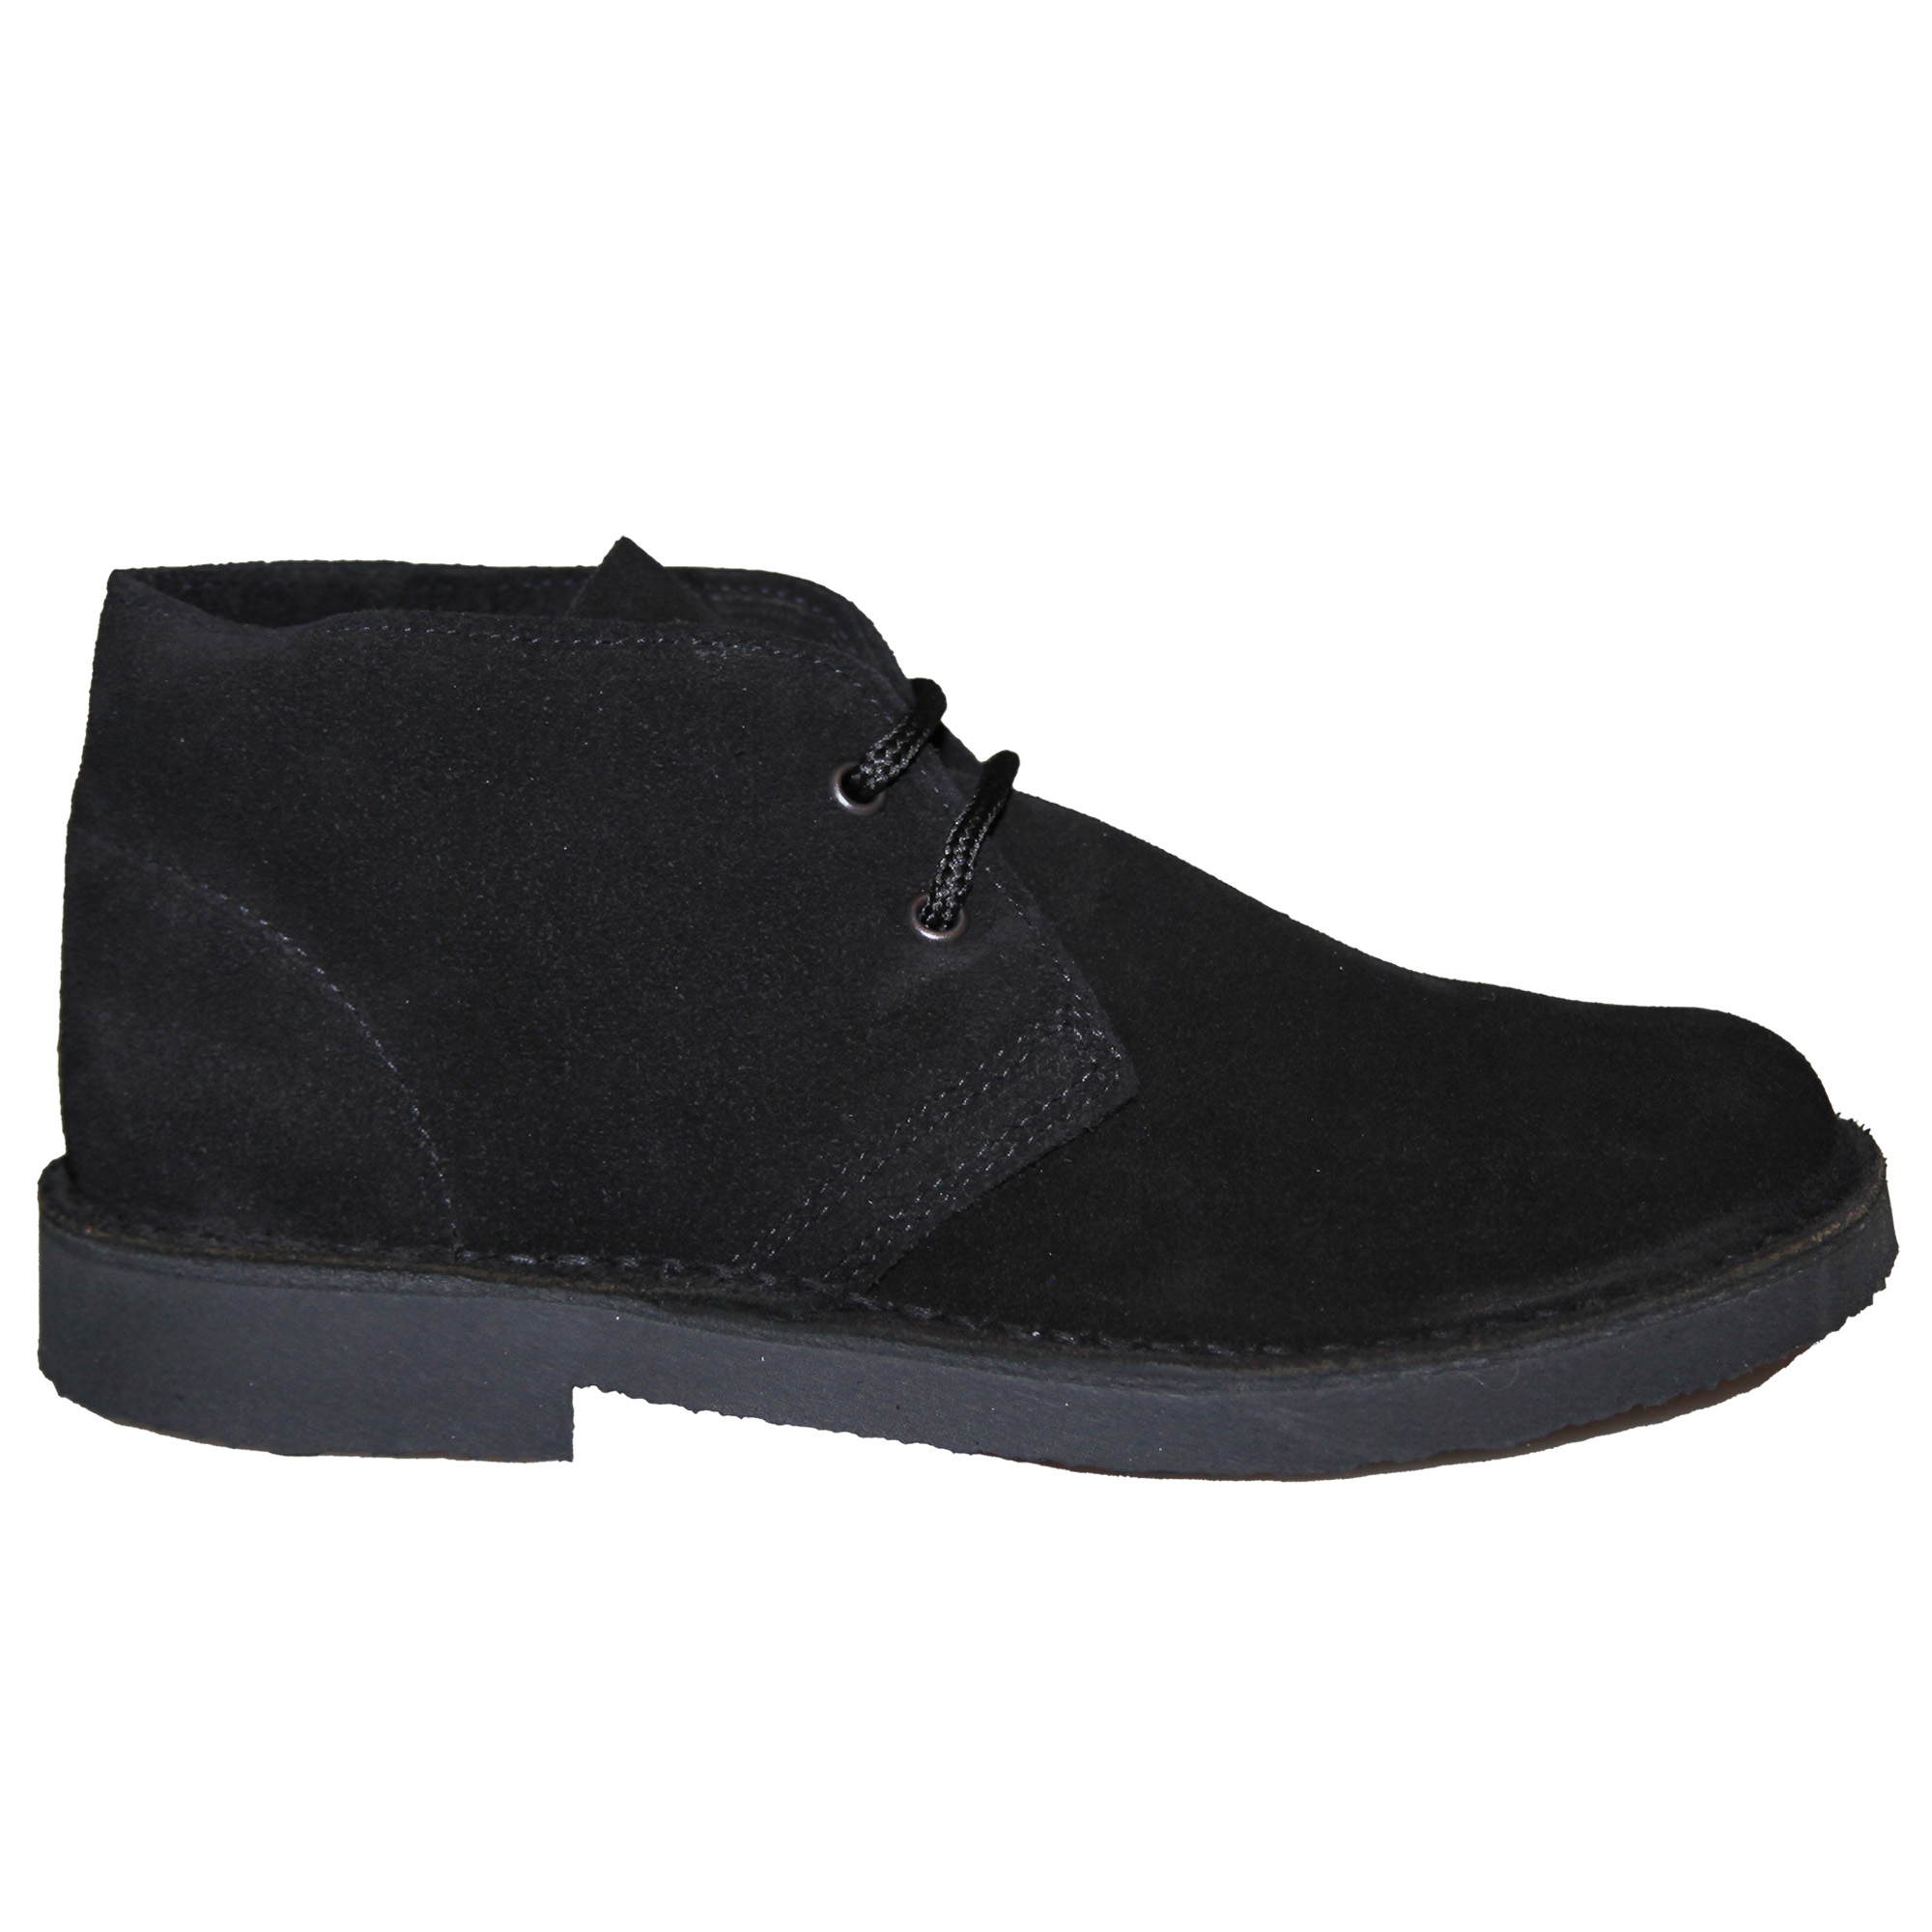 Roamers Womens/Ladies Real Suede Round Toe Unlined Desert Boots (4 UK) (Camel)